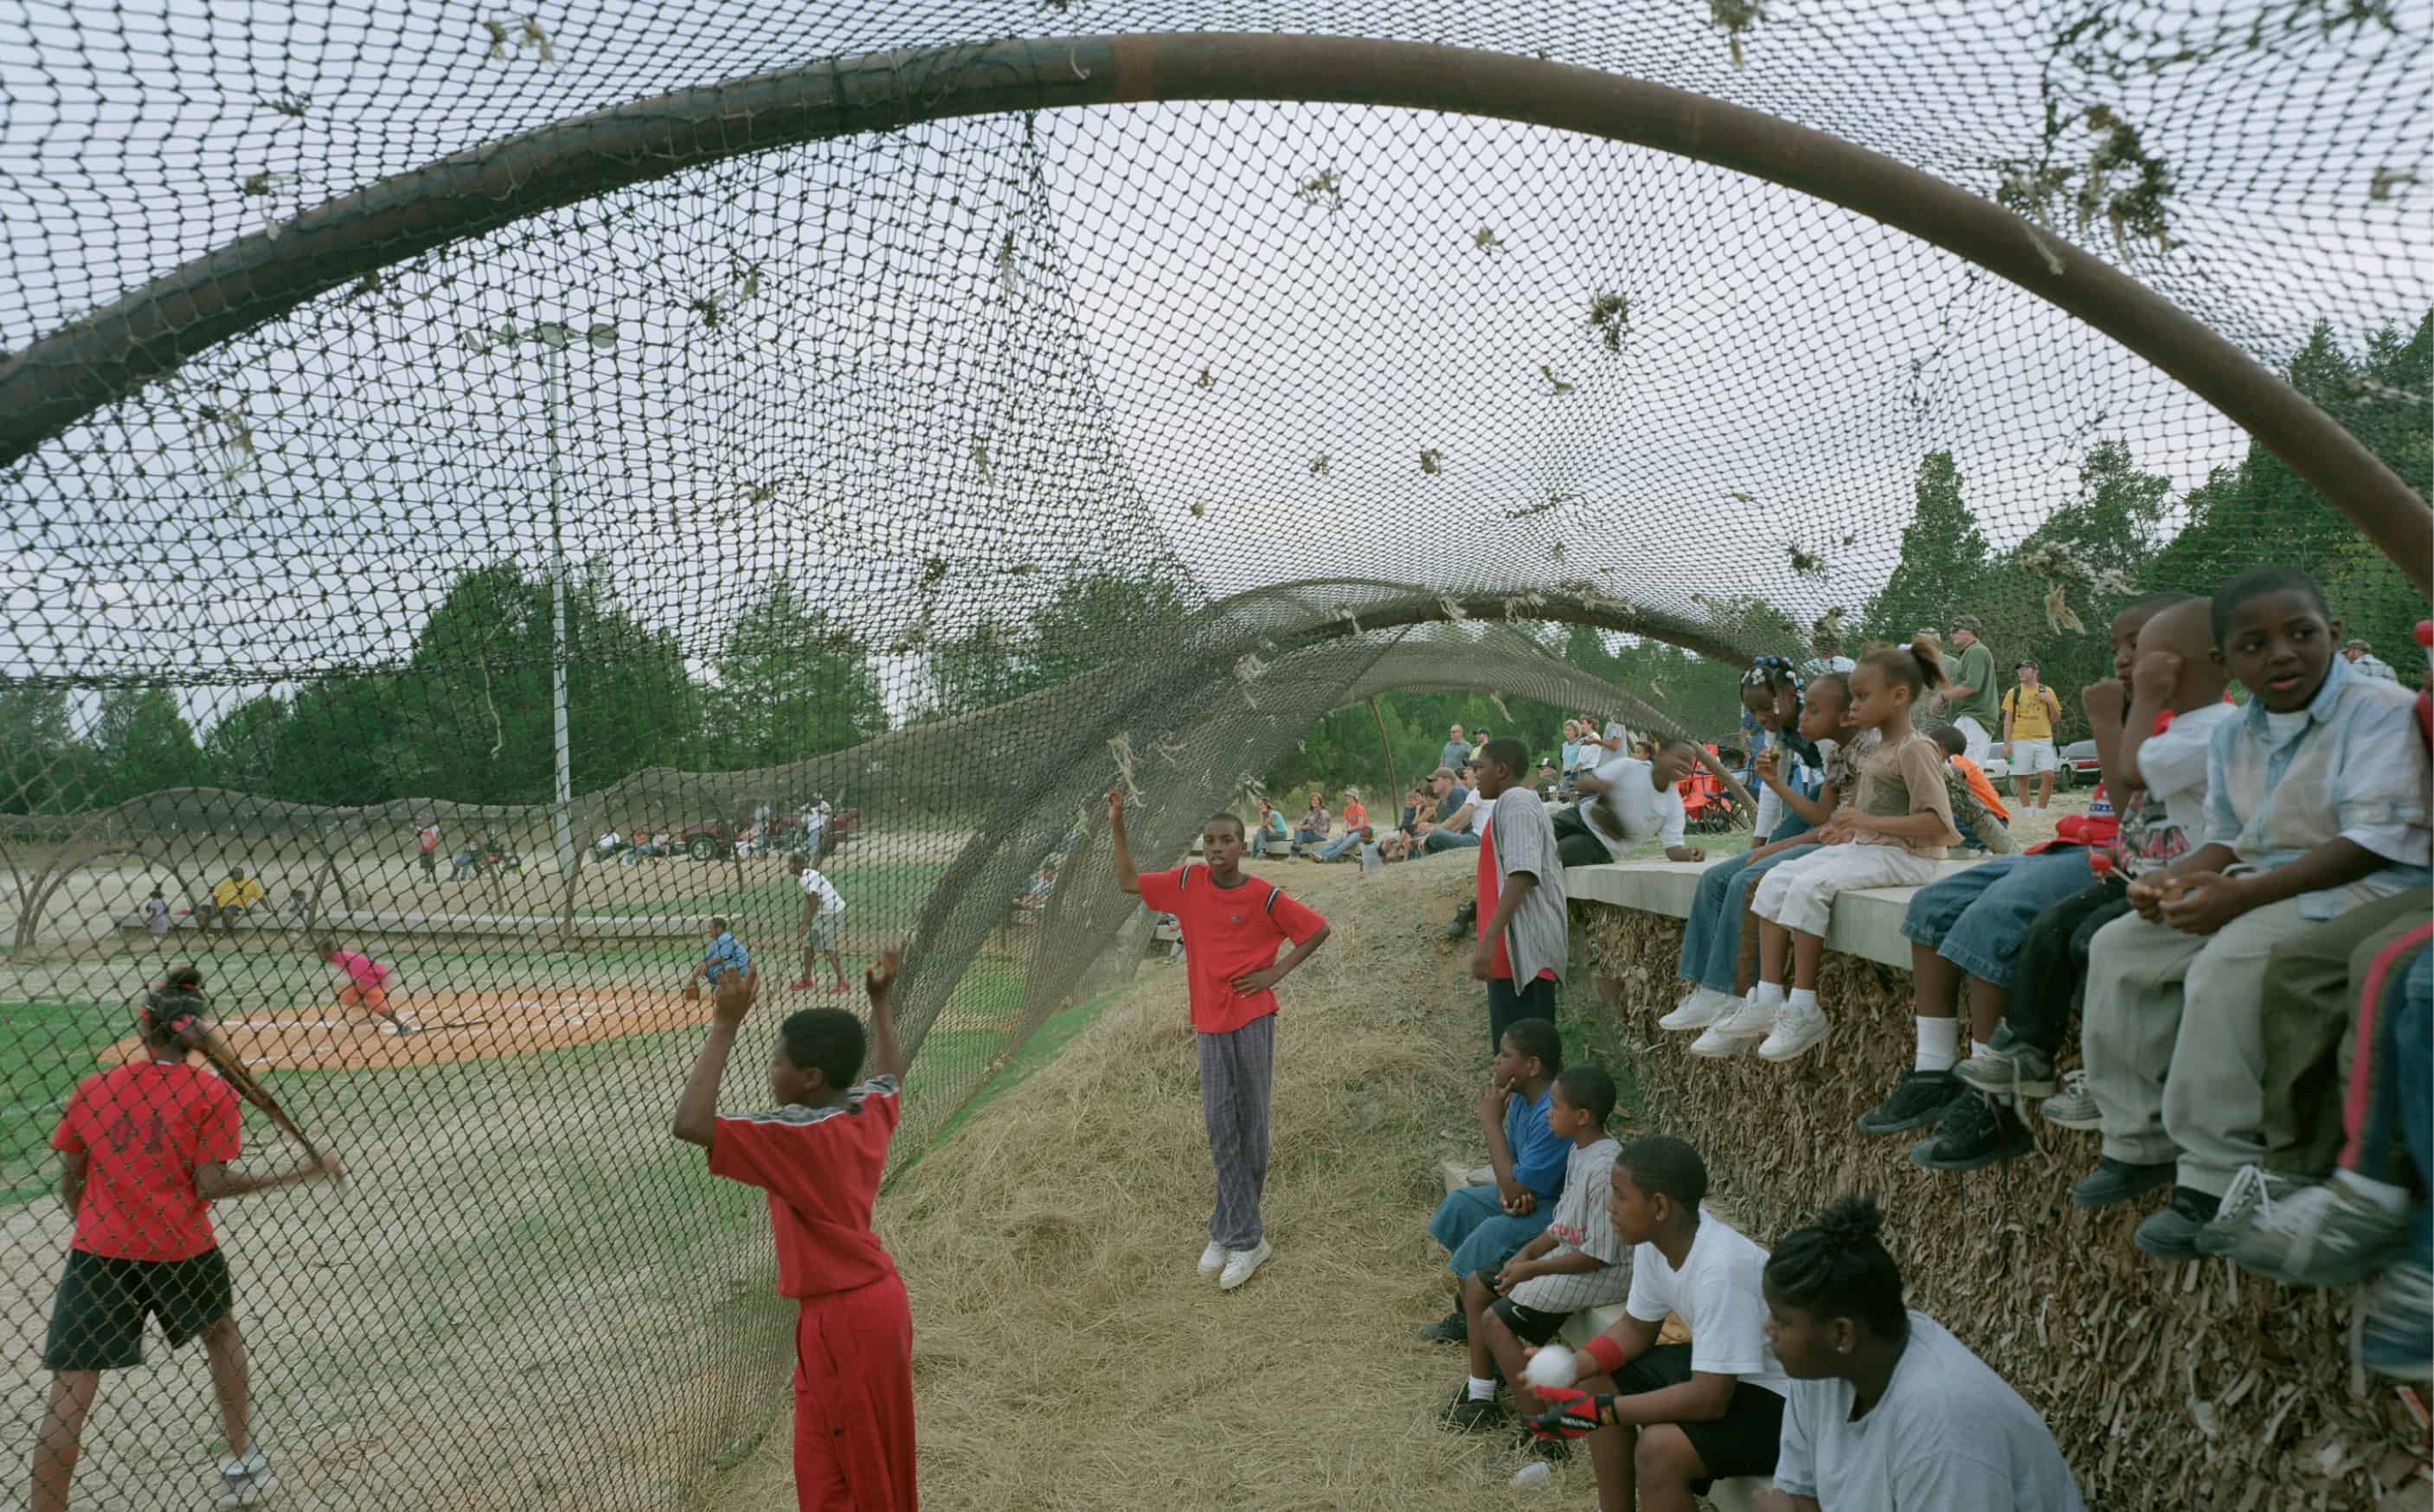 boy looking toward camera holding on to protective netting